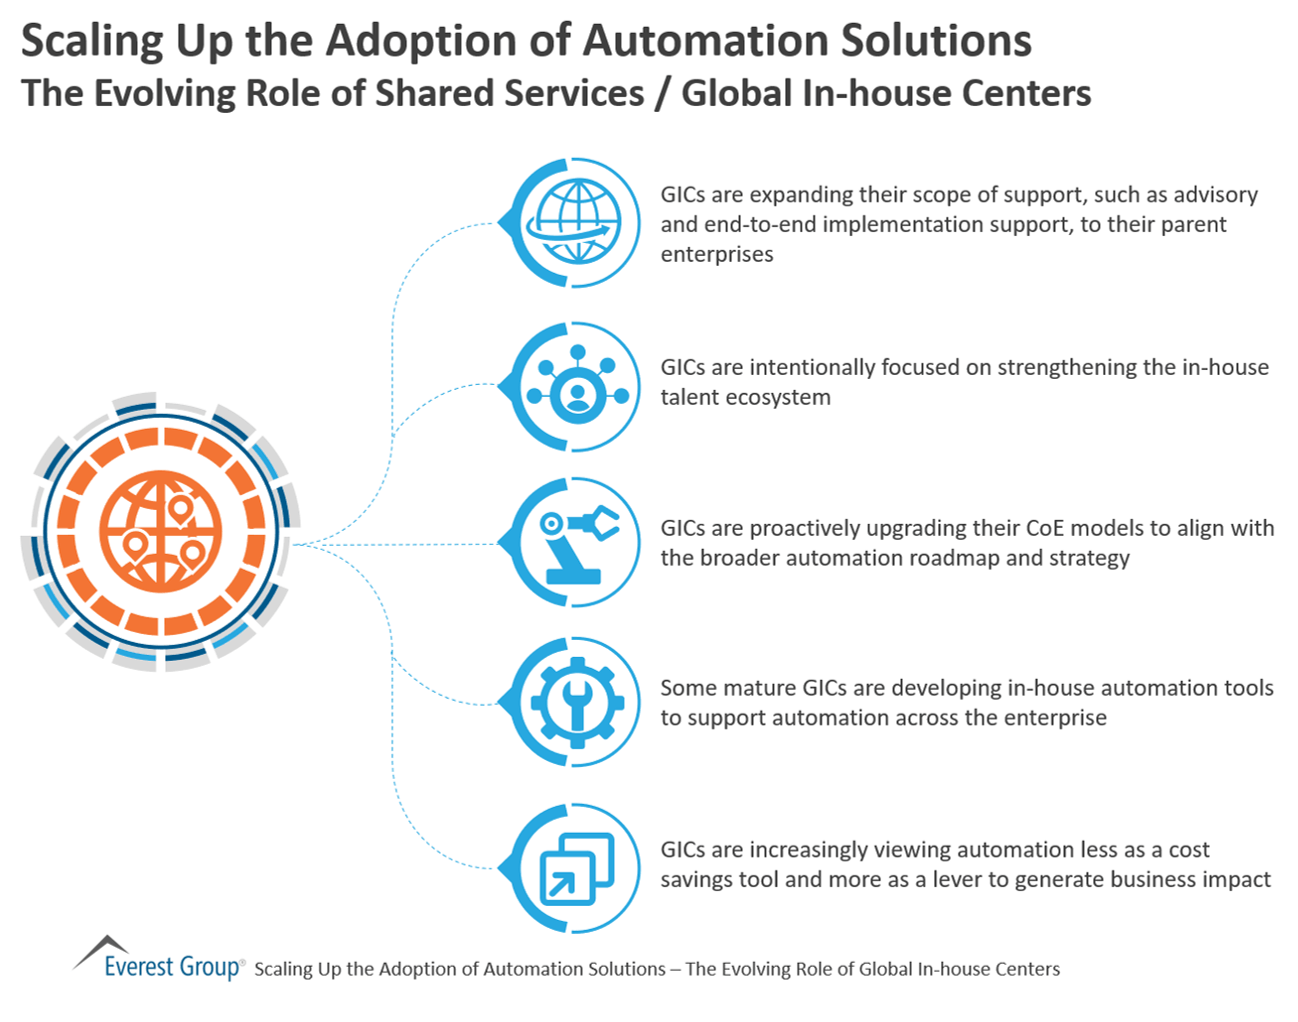 Scaling Up the Adoption of Automation Solutions GIC role